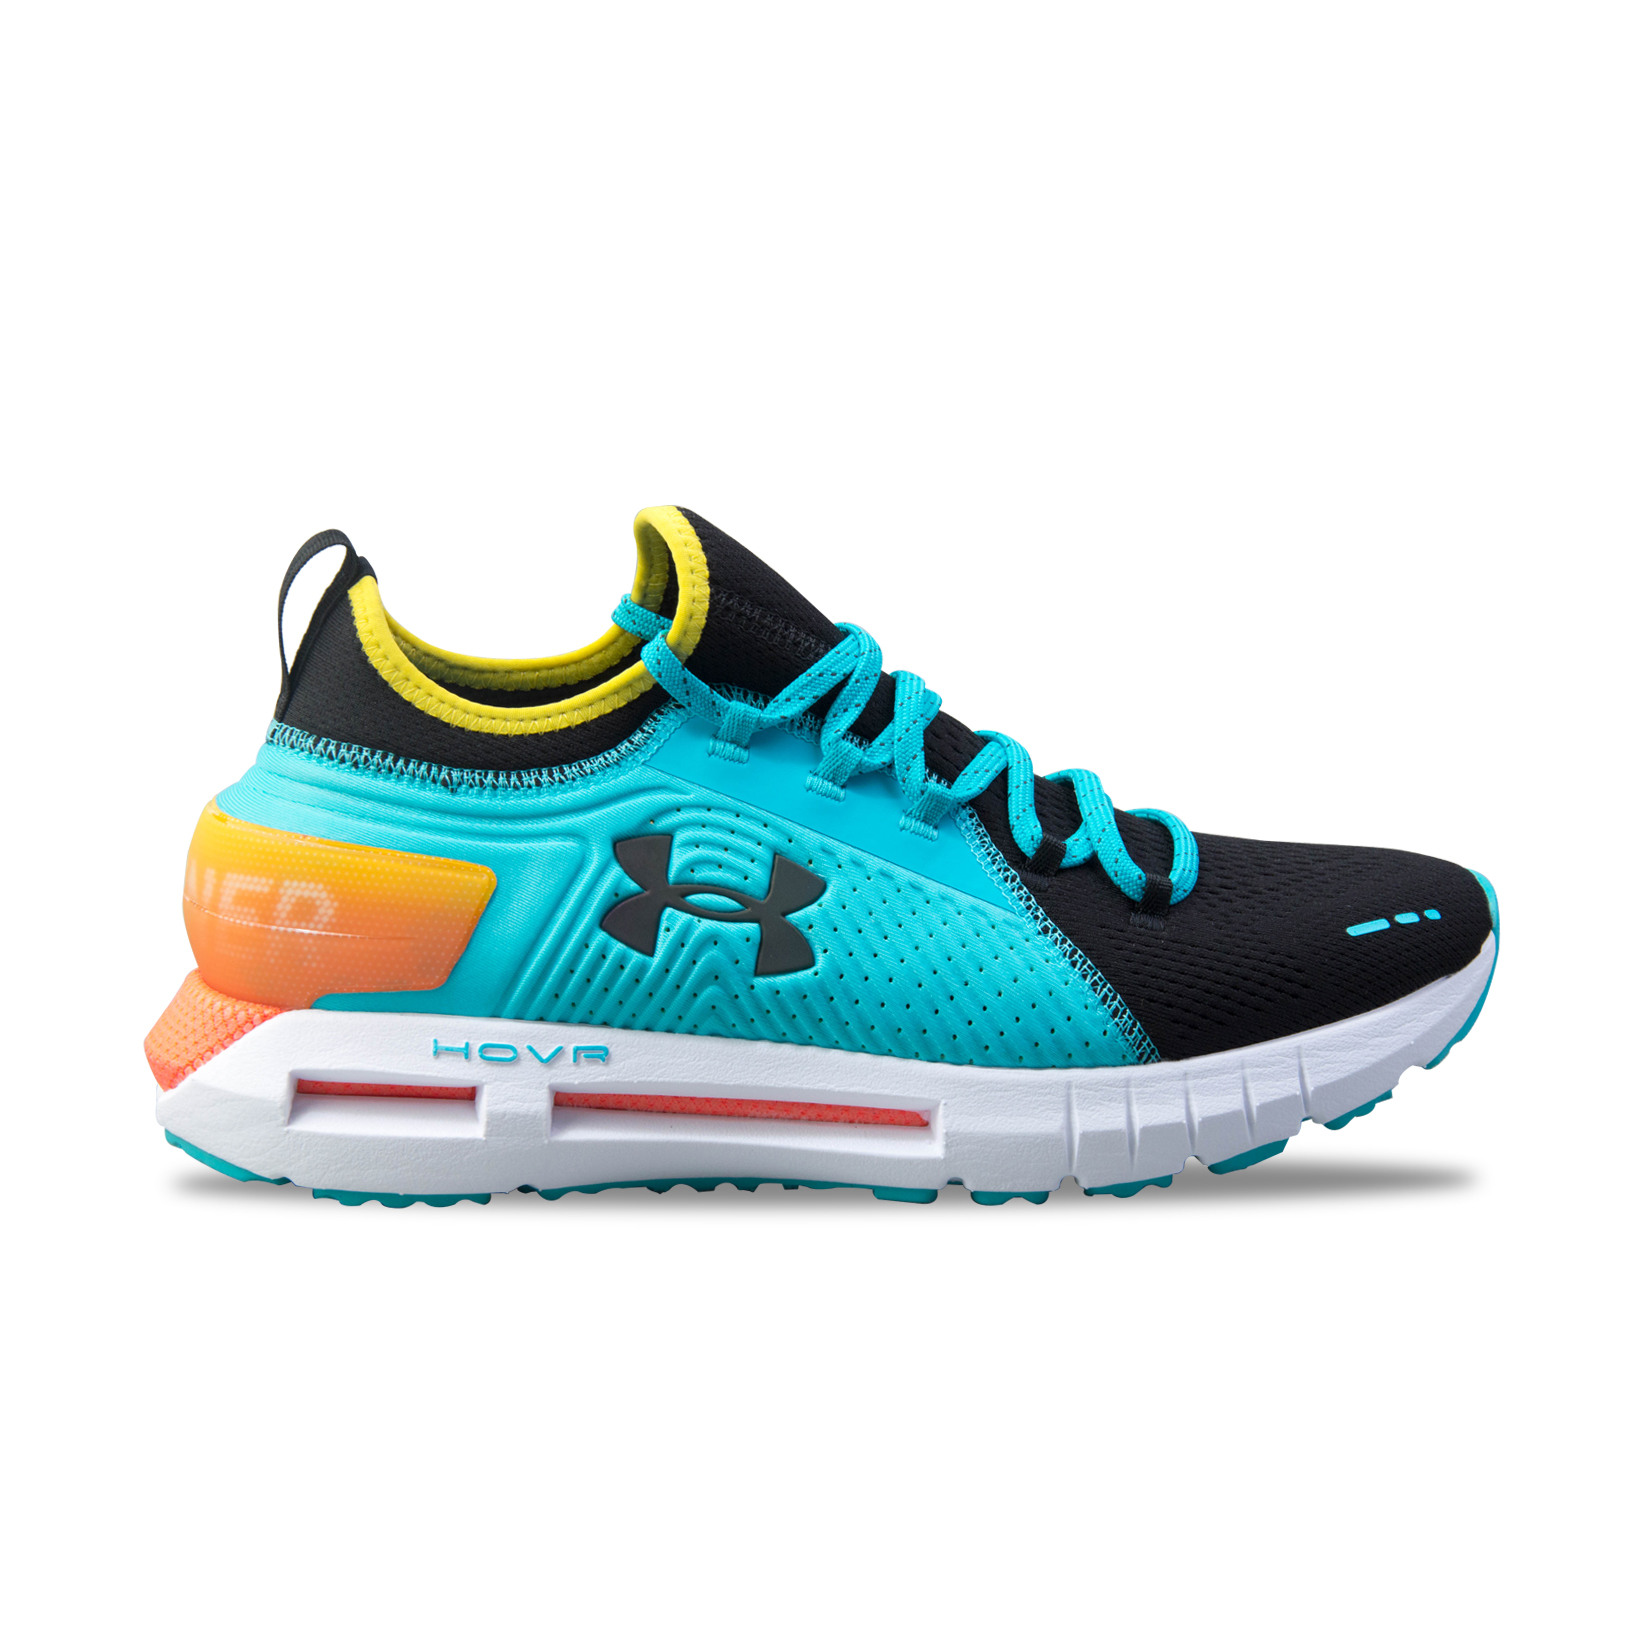 half off 34ad2 fddaf Unisex Shoes Under Armour Hovr Phantom Se Rnr Multicolor ...